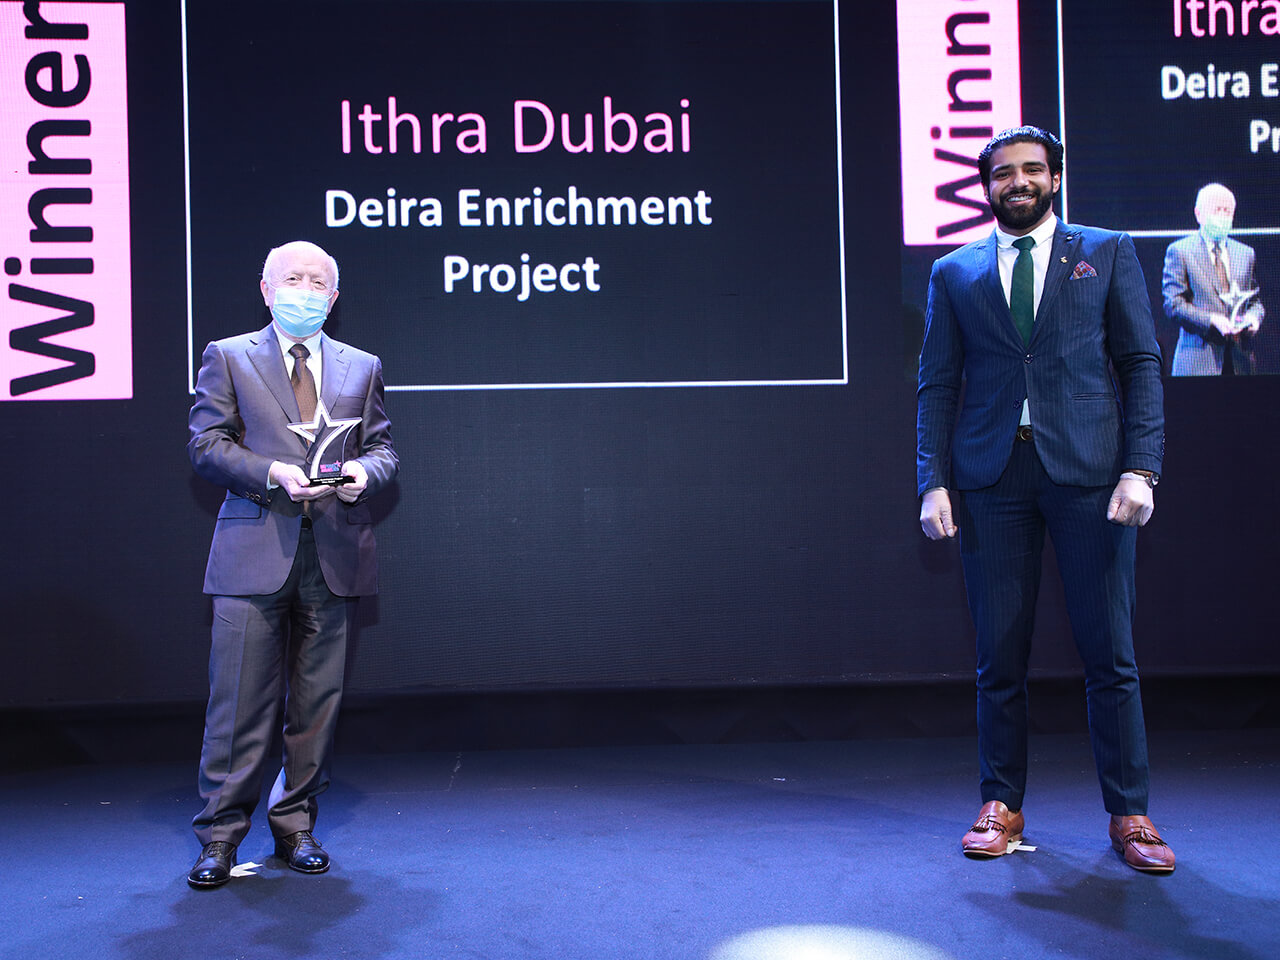 """Deira Enrichment Project Wins """"Mixed-Use Project of the Year Award"""" at the Big Project Awards 2020"""